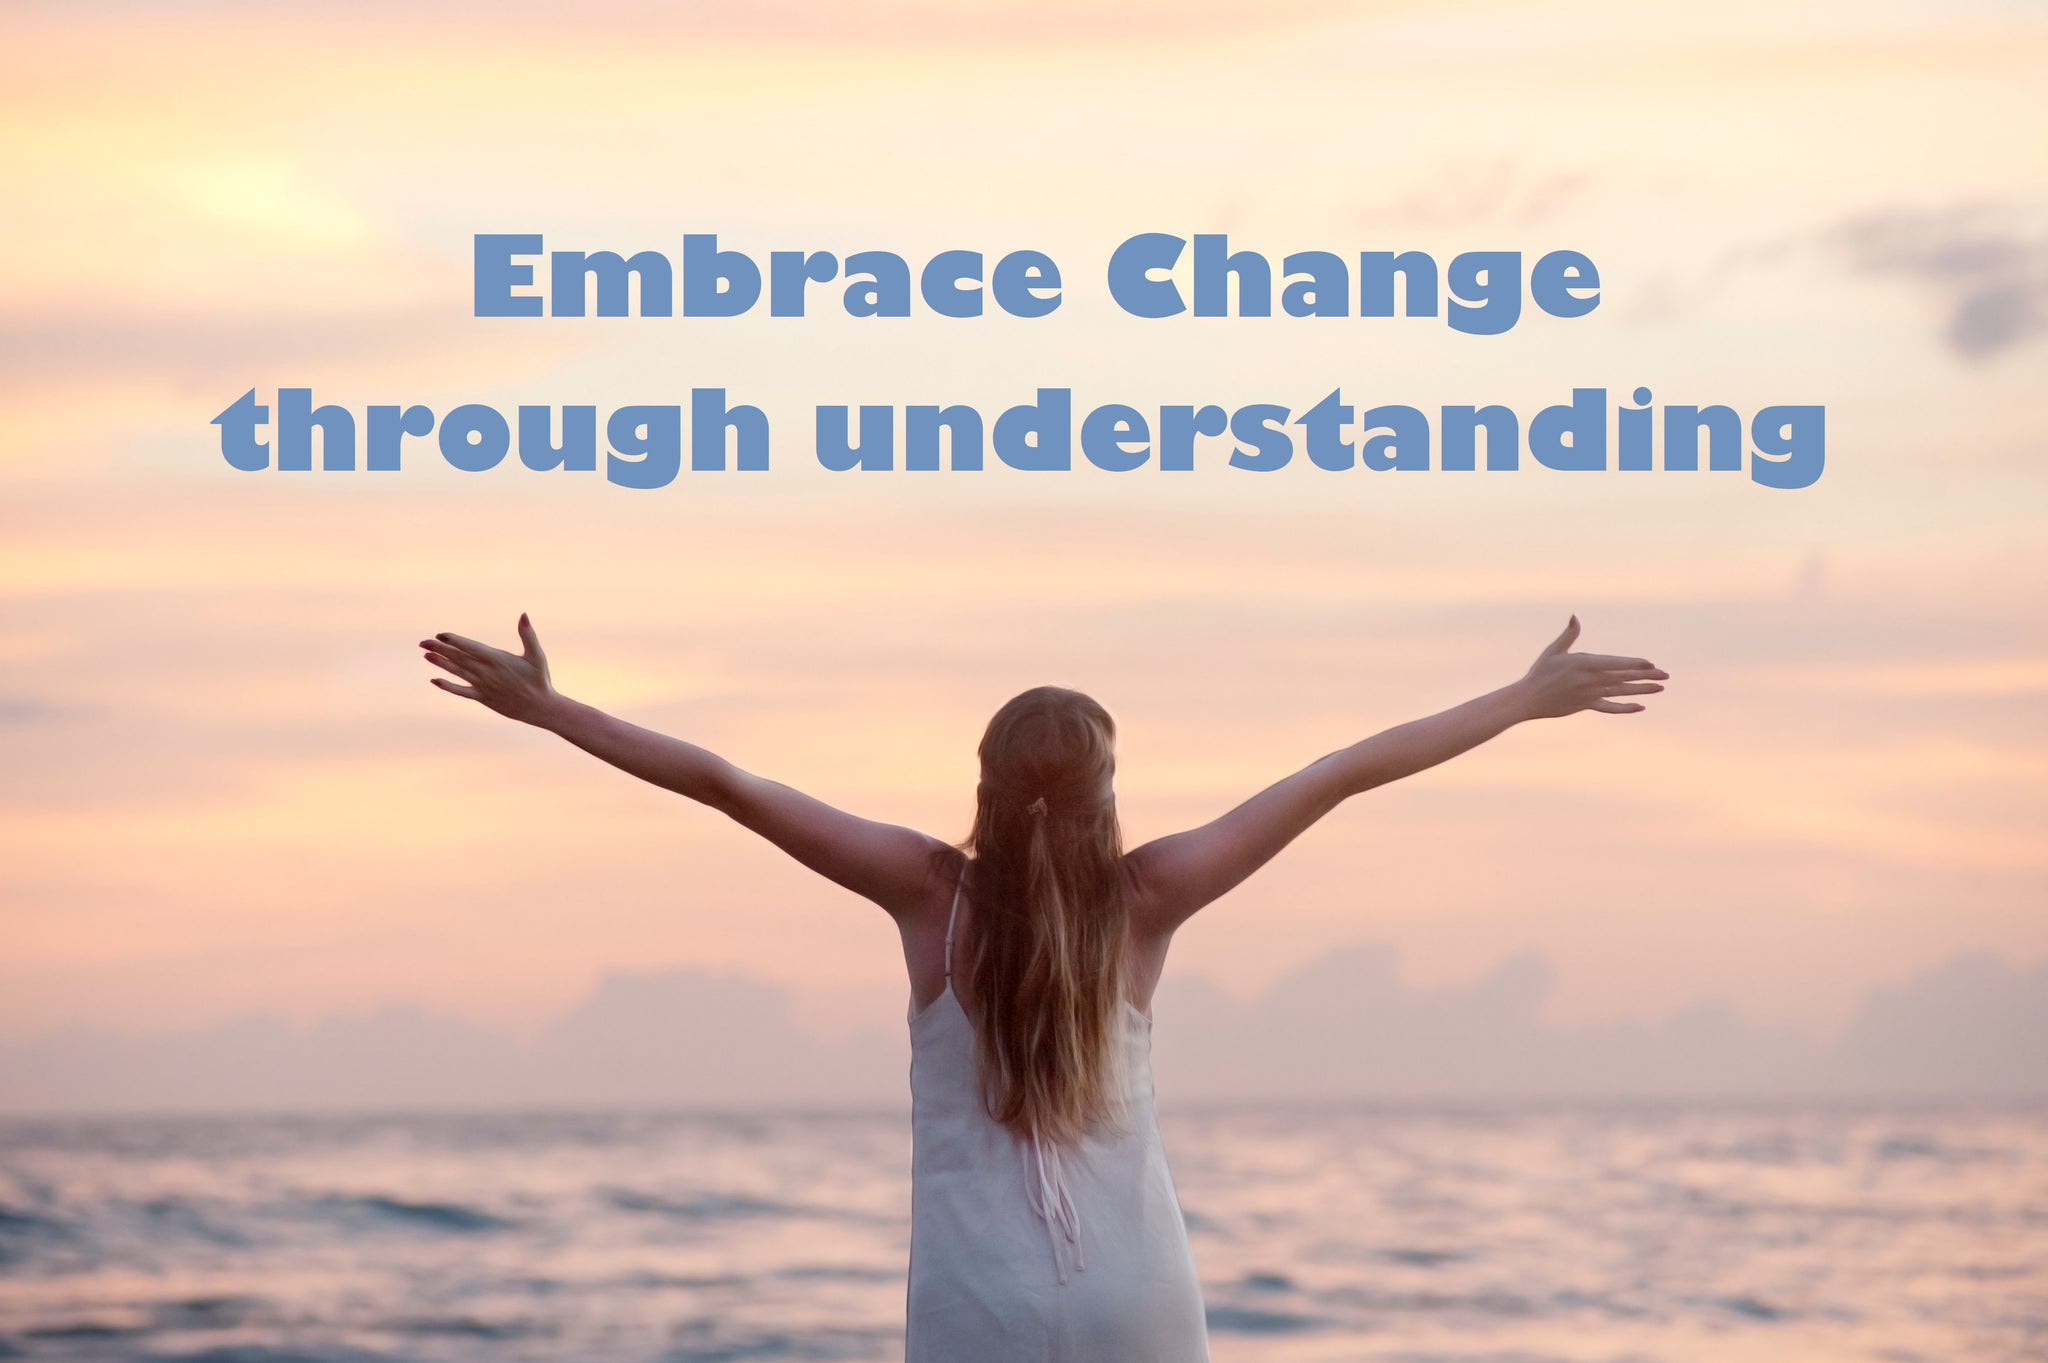 Embrace Change at capitalmedicalsupply.ca